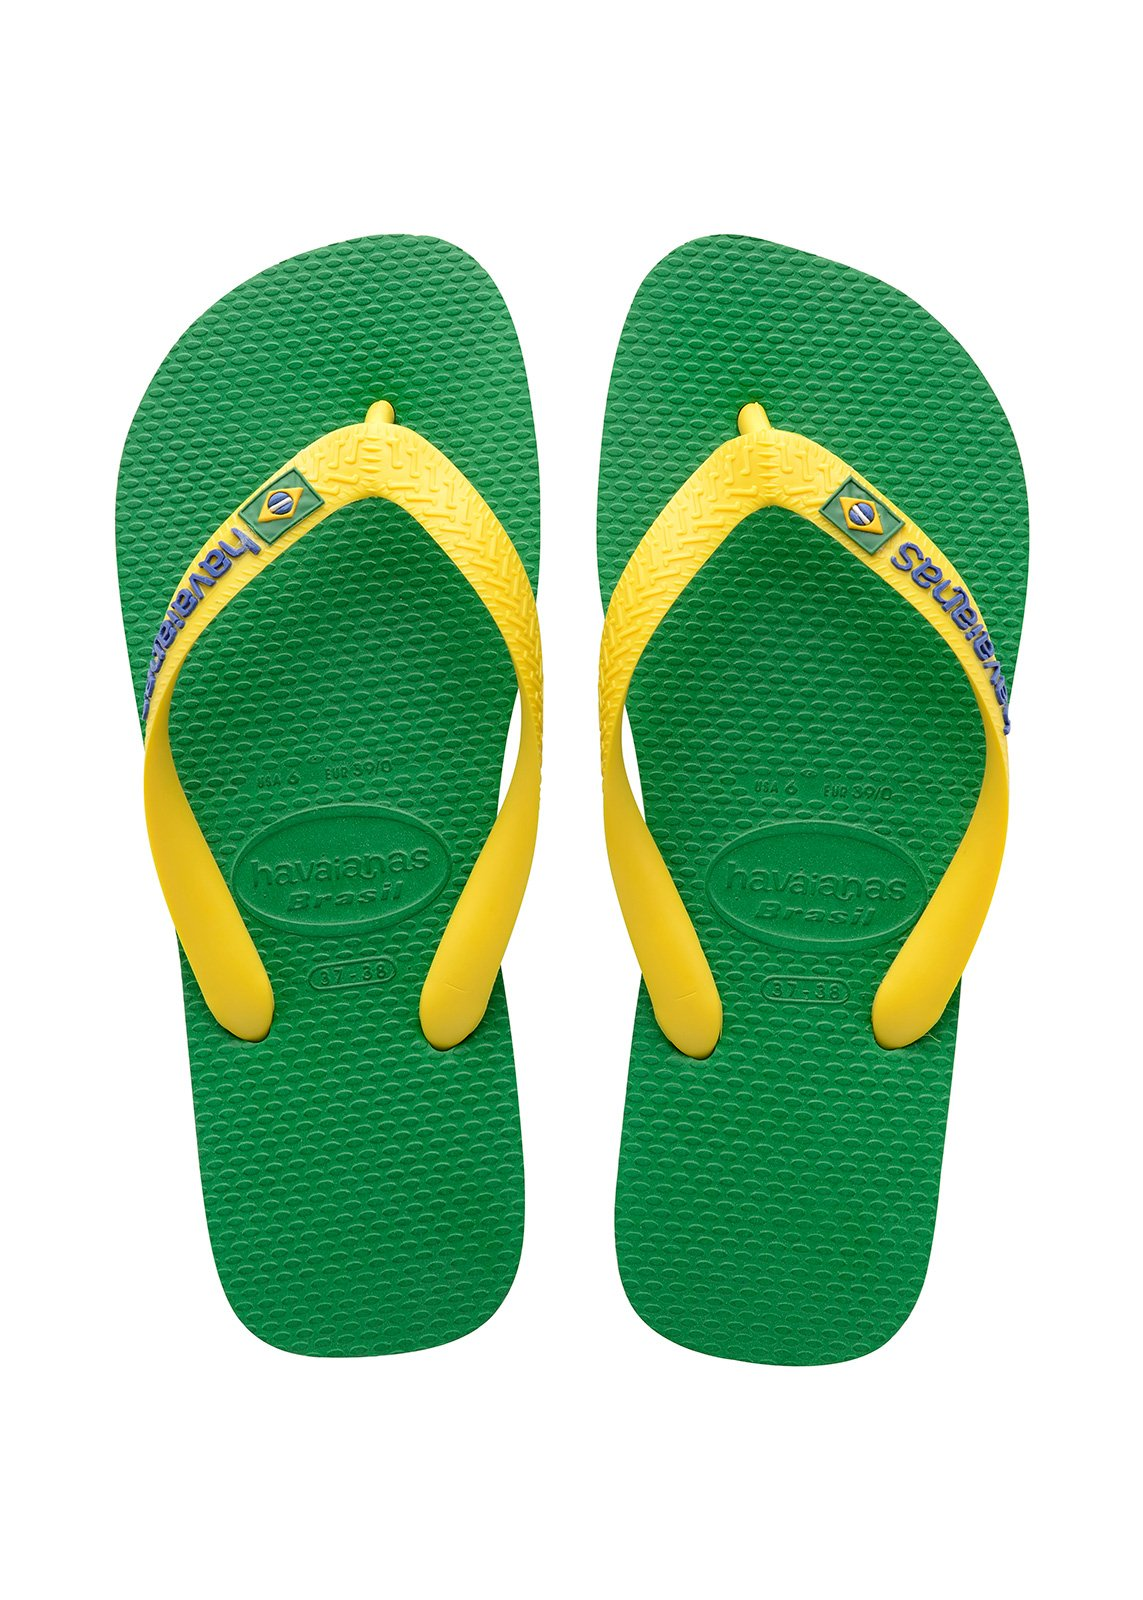 rio brands beach chairs uk chair covers and sashes rental flip flops havaianas brasil logo green